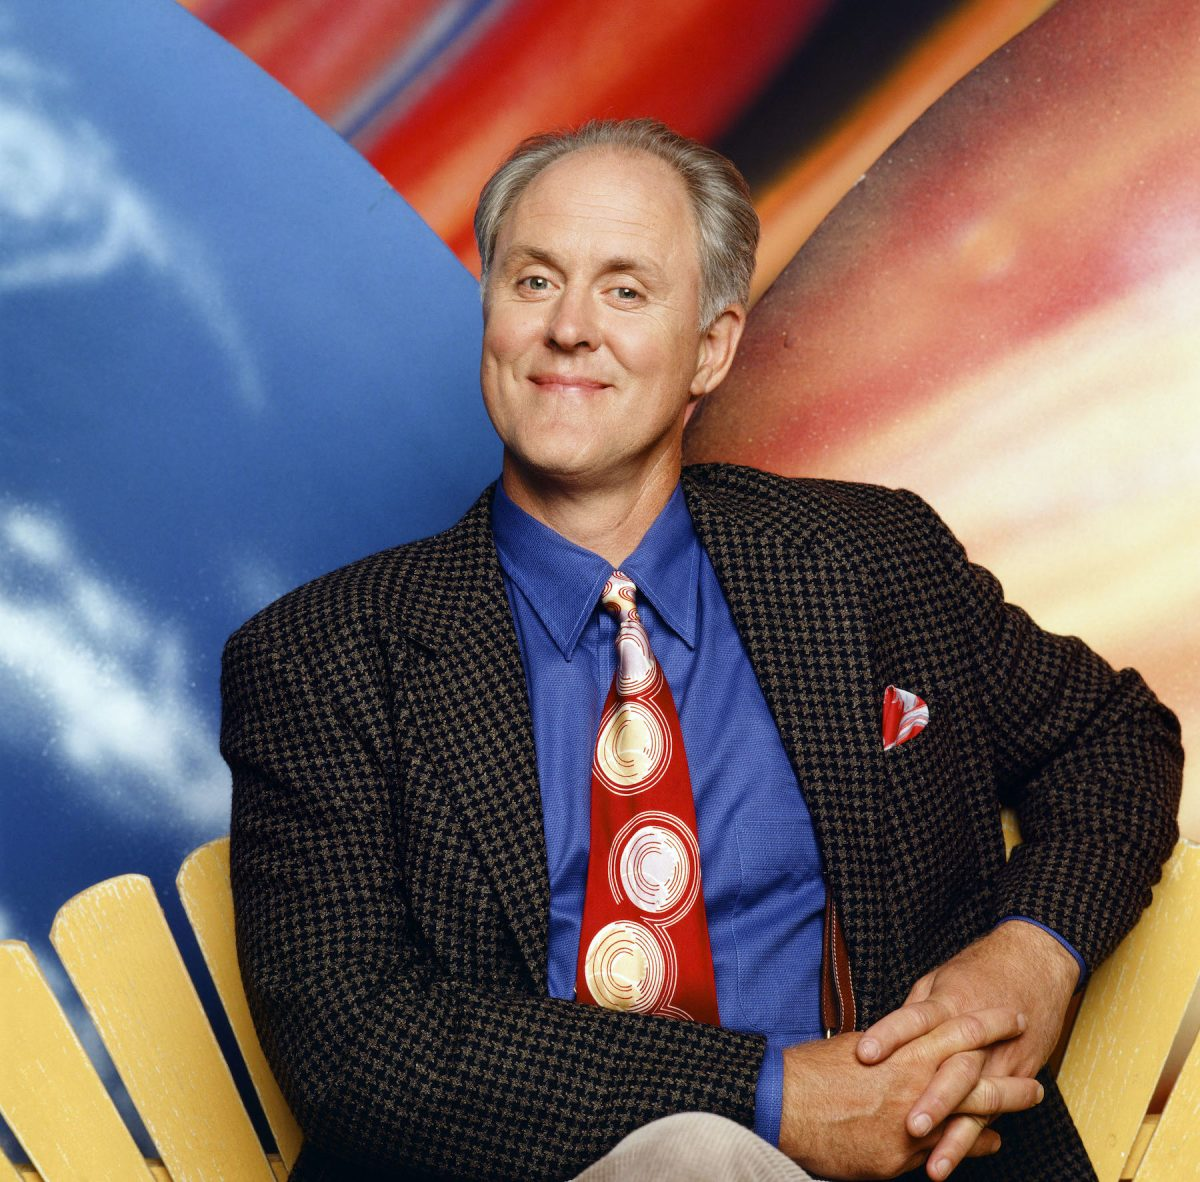 John Lithgow as Dick Solomon in '3rd Rock from the Sun'